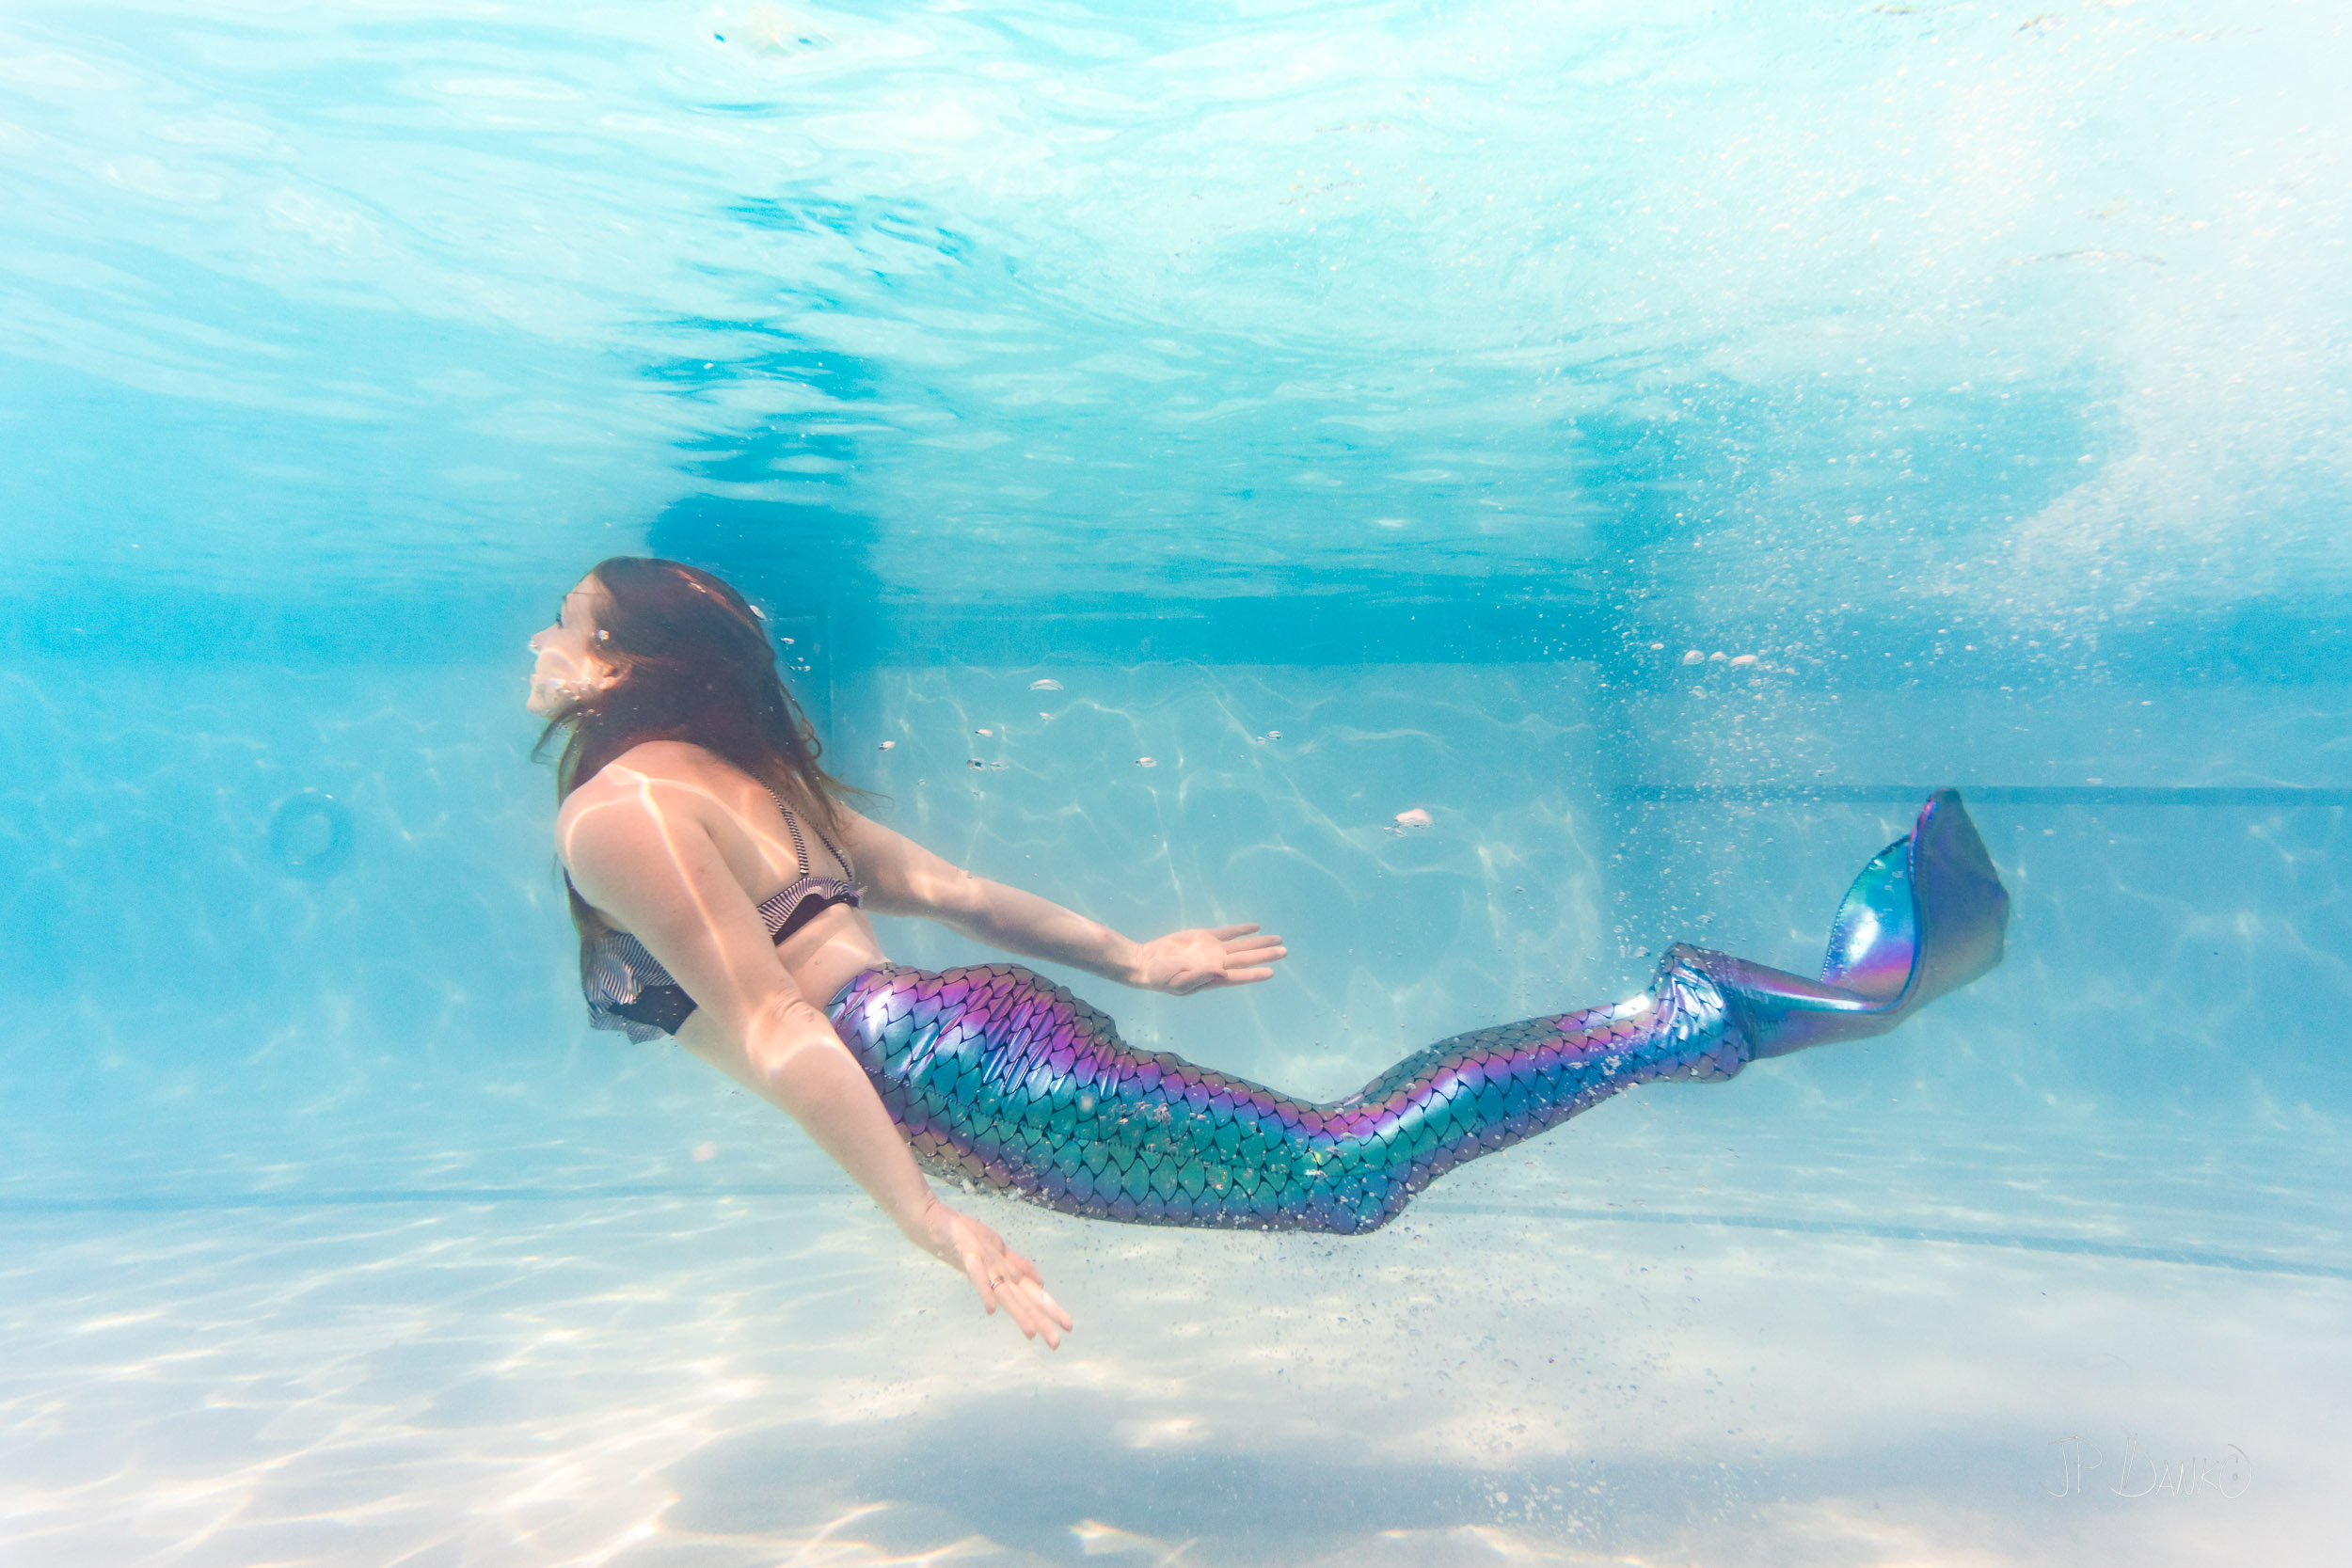 Florida Mermaid Tail Costume In Summer Swimming Pool Pictures By Mom